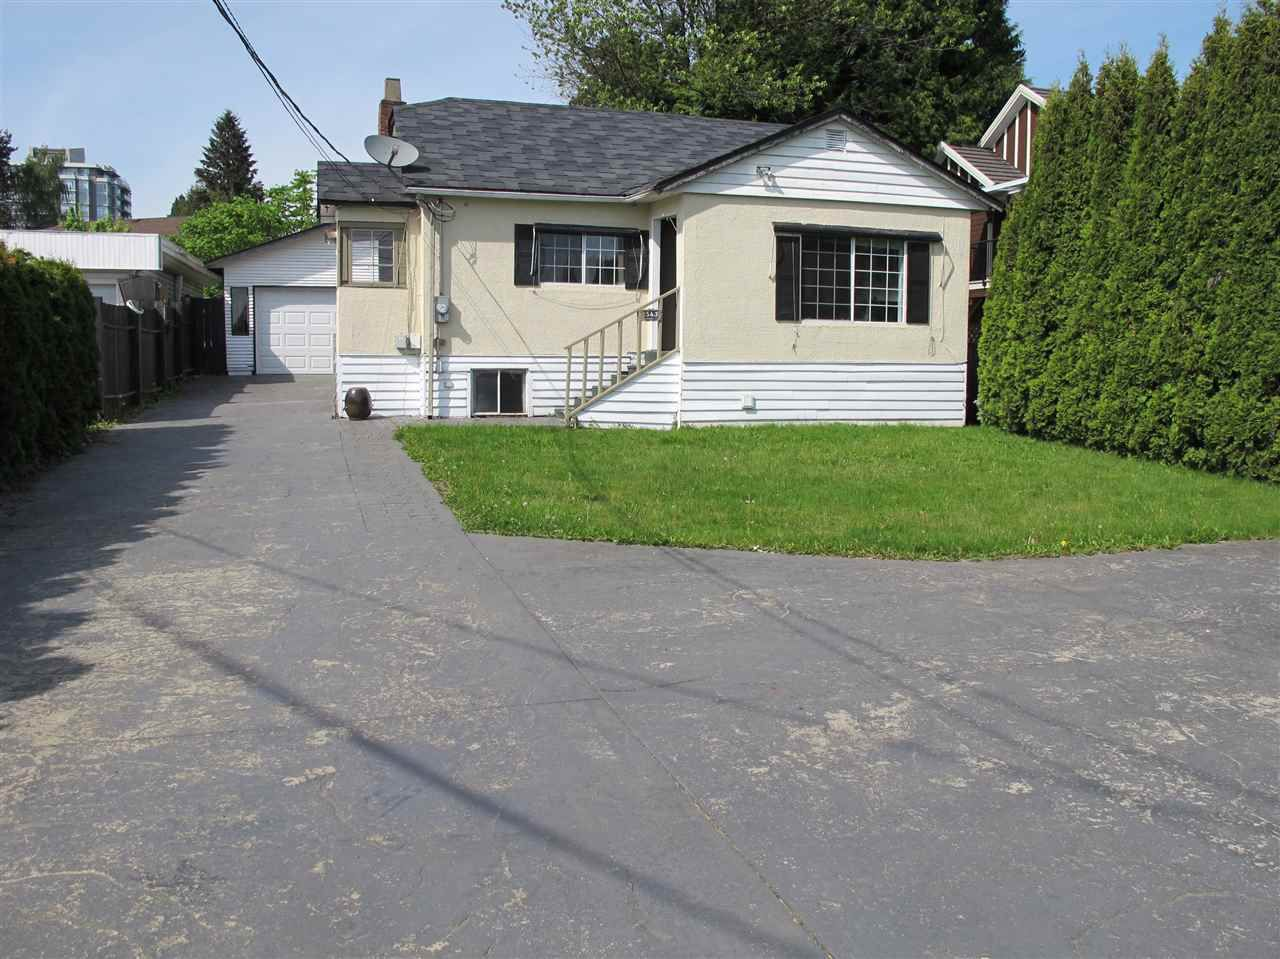 Main Photo: 563 ALDERSON Avenue in Coquitlam: Coquitlam West House for sale : MLS®# R2044273